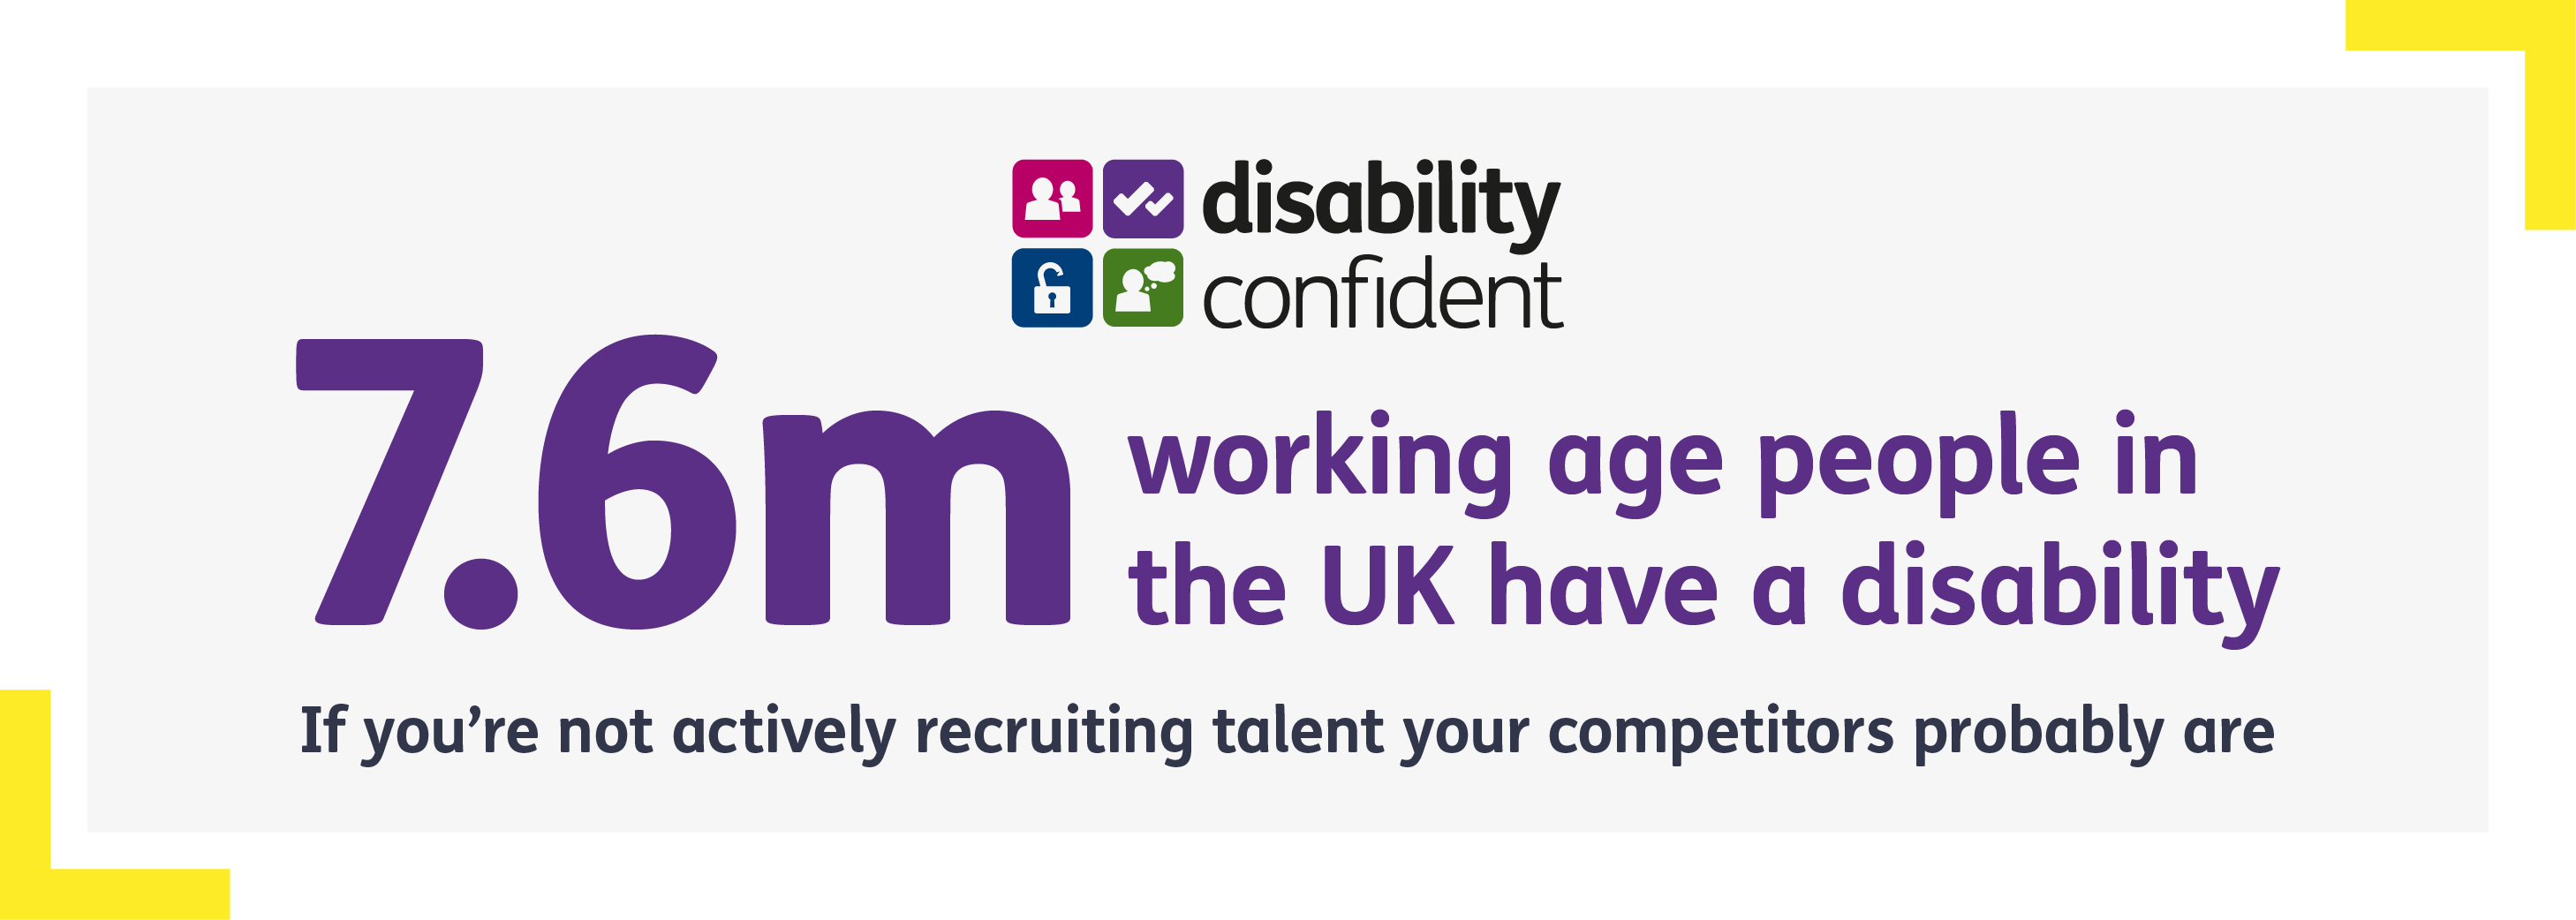 Image caption says 7.6m working age people in UK have a disability. If you're not recruiting talent, your competitors probably are